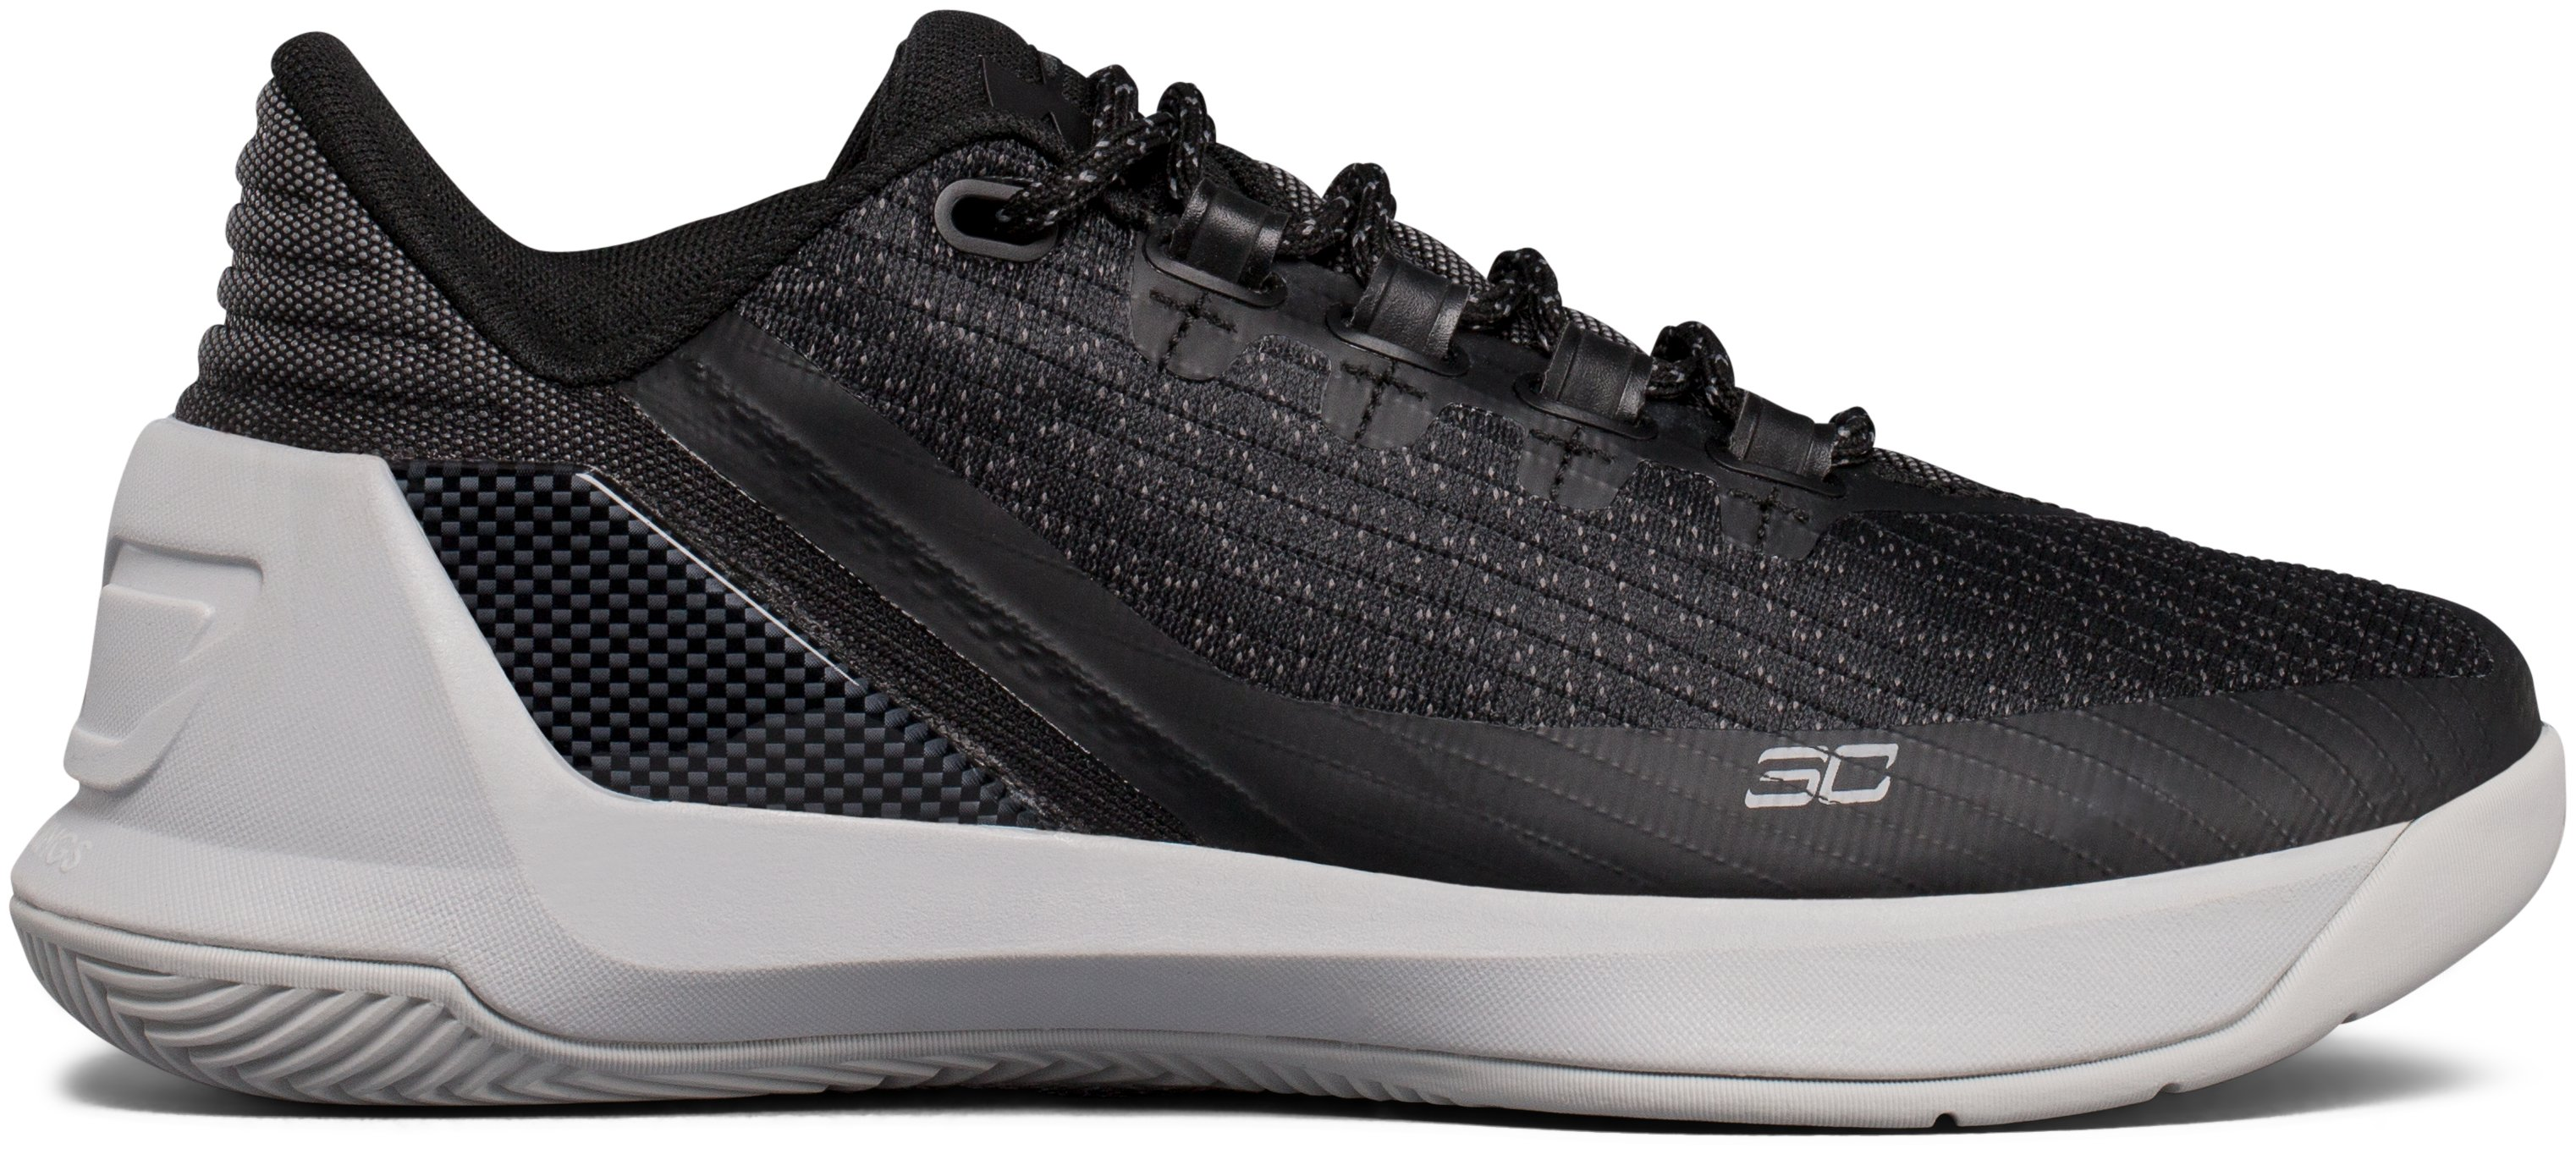 Boys' Grade School UA Curry 3 Low Basketball Shoes, Black